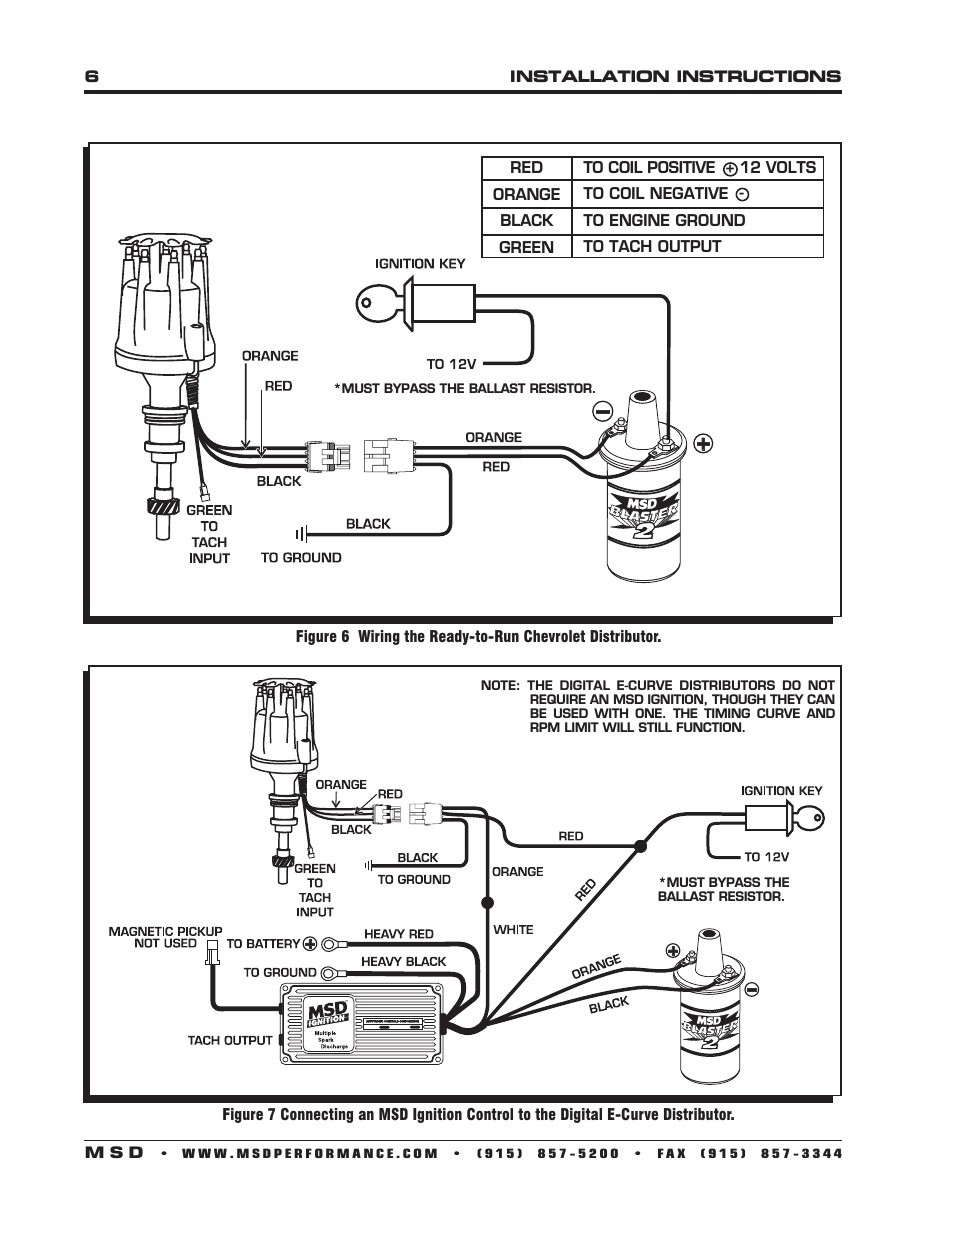 Msd 8360 Wiring Diagram Library Cantilever Beam Moment Coloring Pages Pro Billet Switch U2022 Rh 140 82 24 126 Distributor